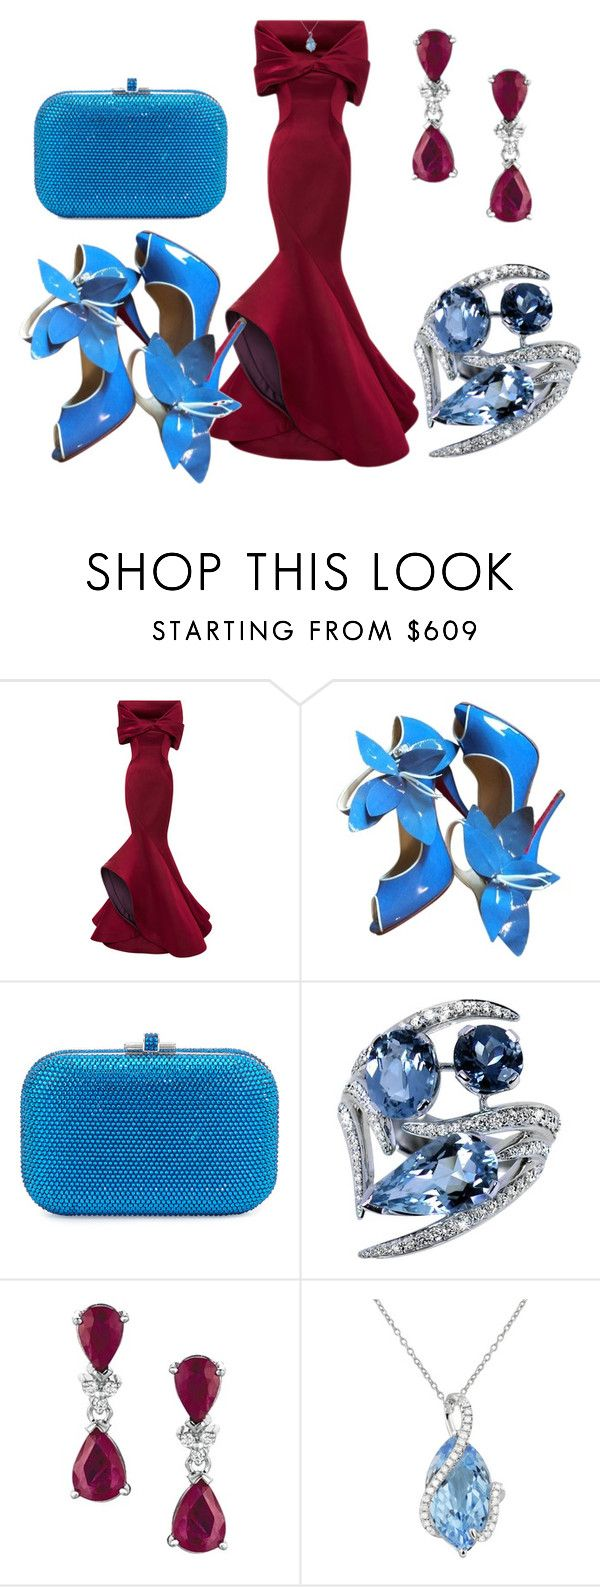 """""""priceless"""" by theglue on Polyvore featuring Zac Posen, Christian Louboutin, Judith Leiber, Shaun Leane, Effy Jewelry, women's clothing, women, female, woman and misses"""